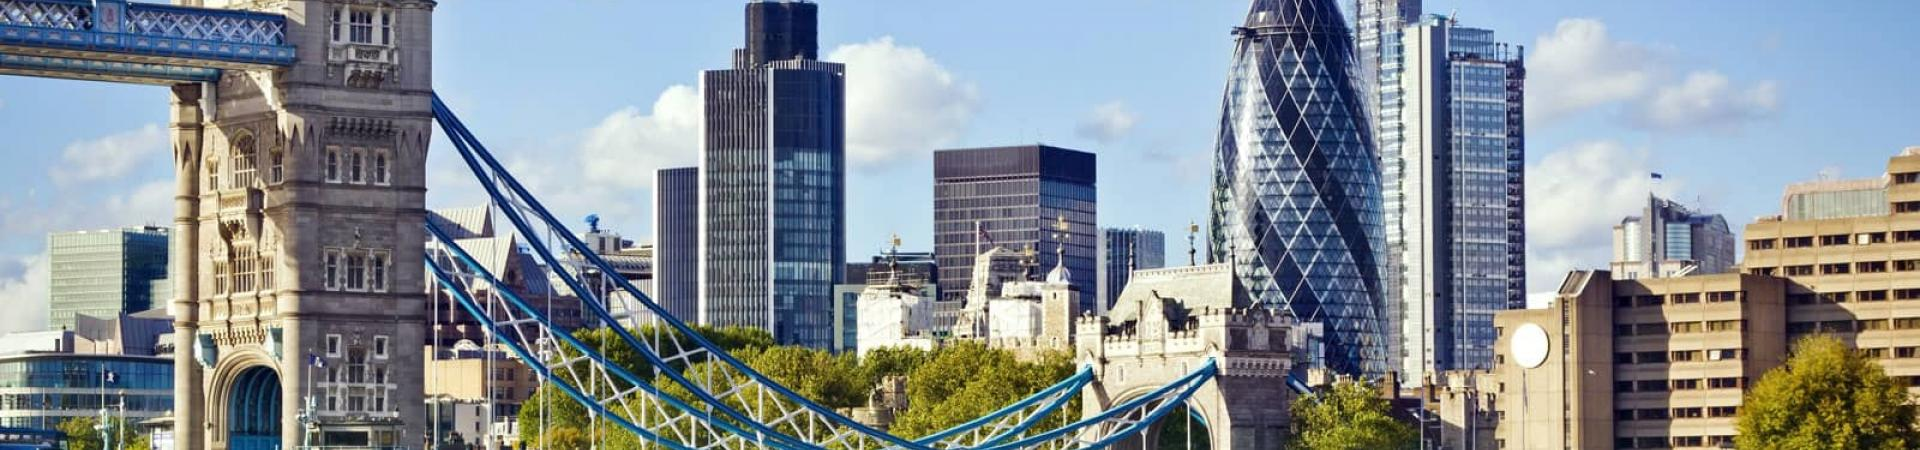 Cityscape of London including the Gherkin